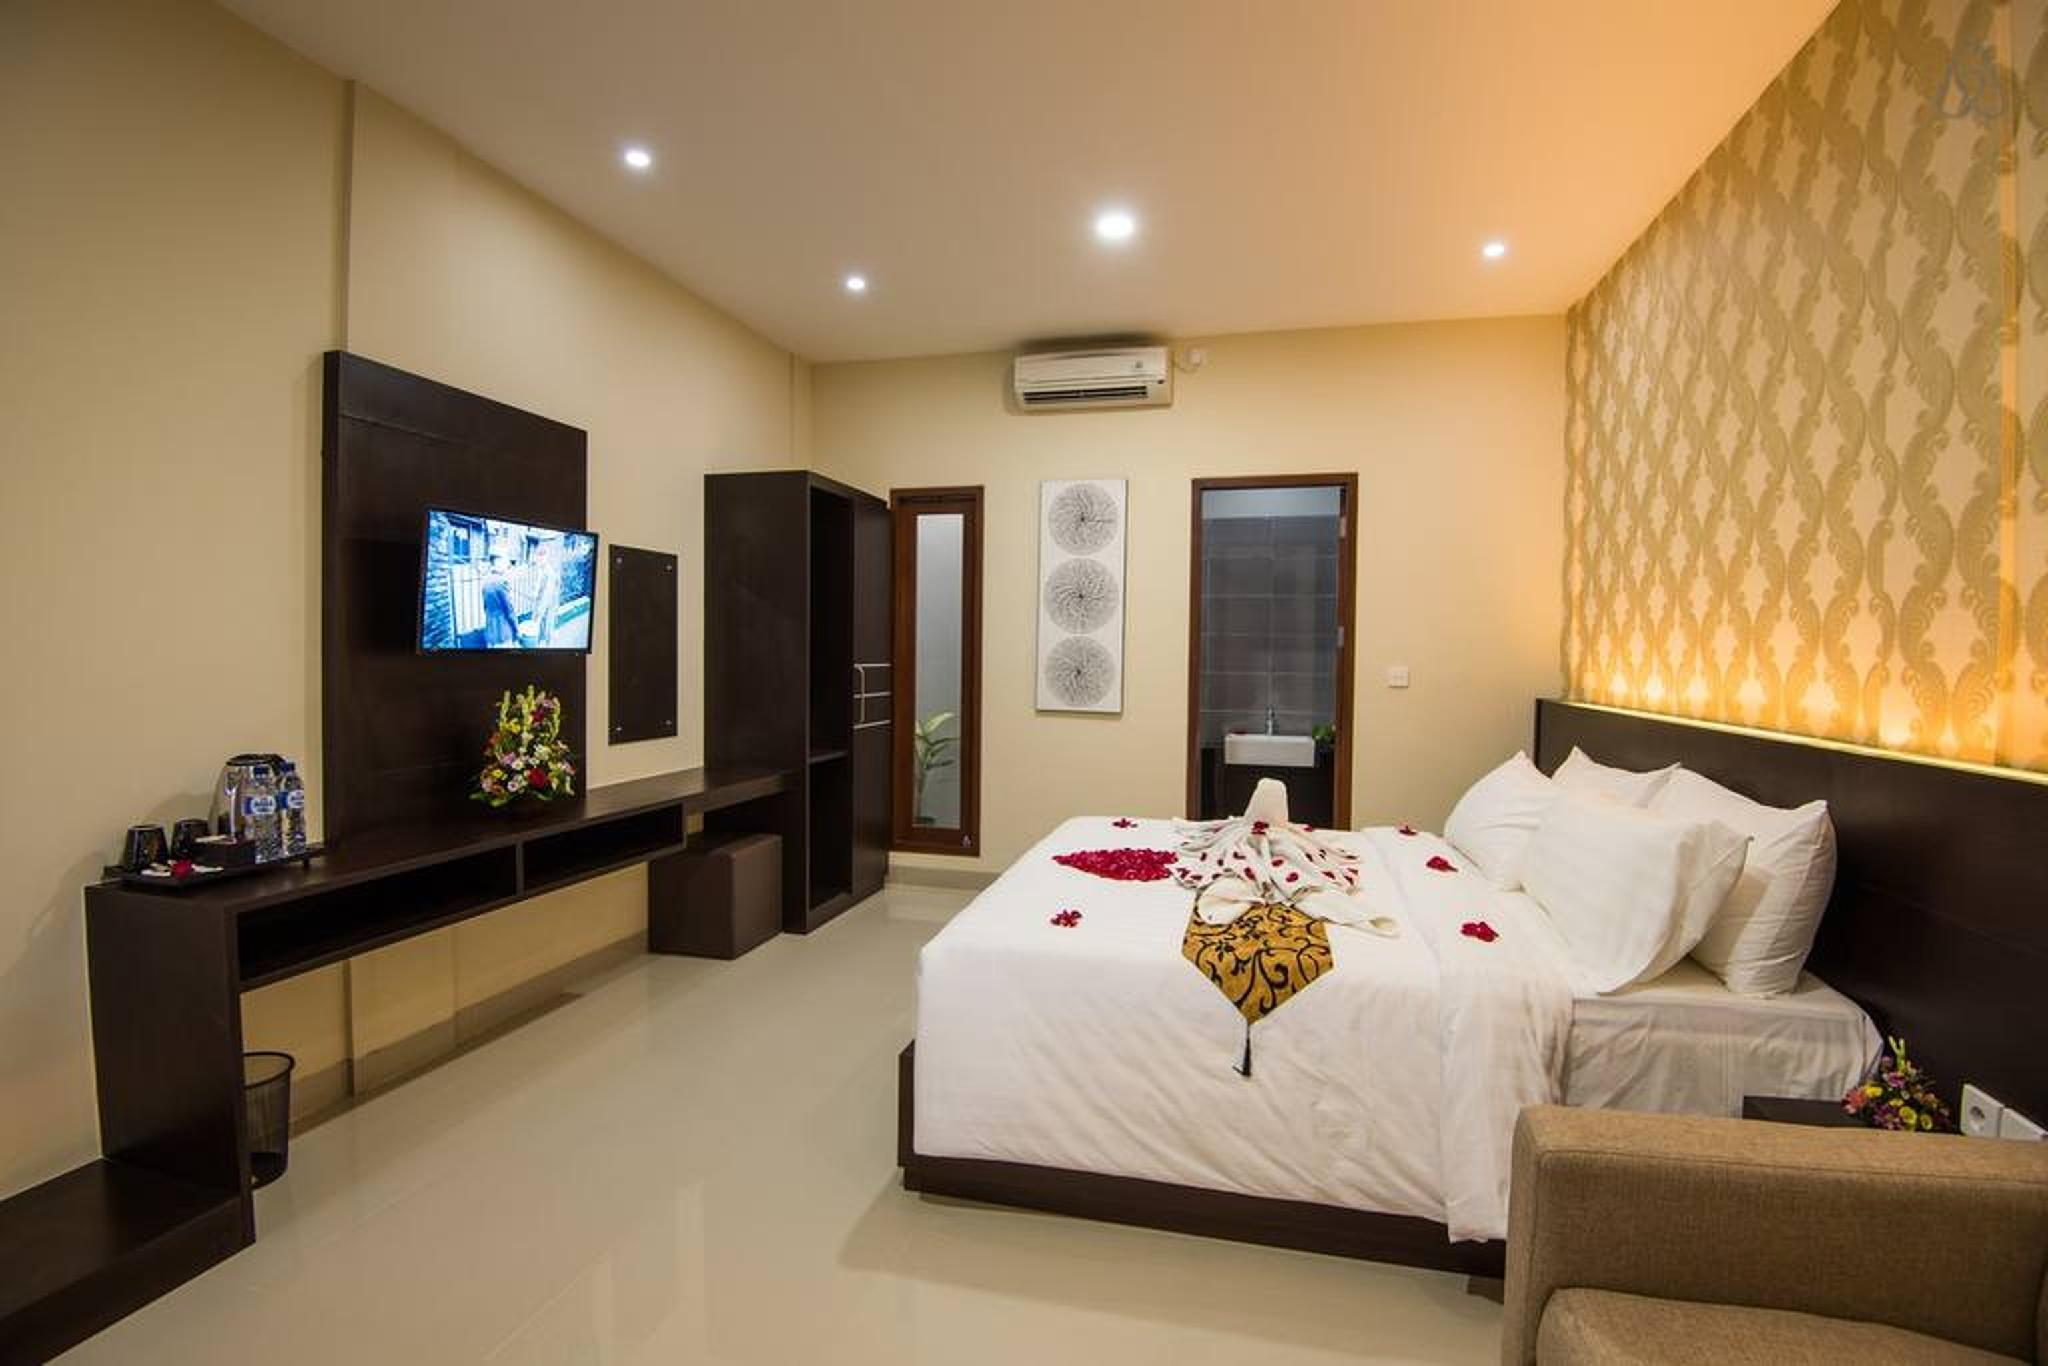 Honeymoon Package at Bisma Suites #Kuta #Legian